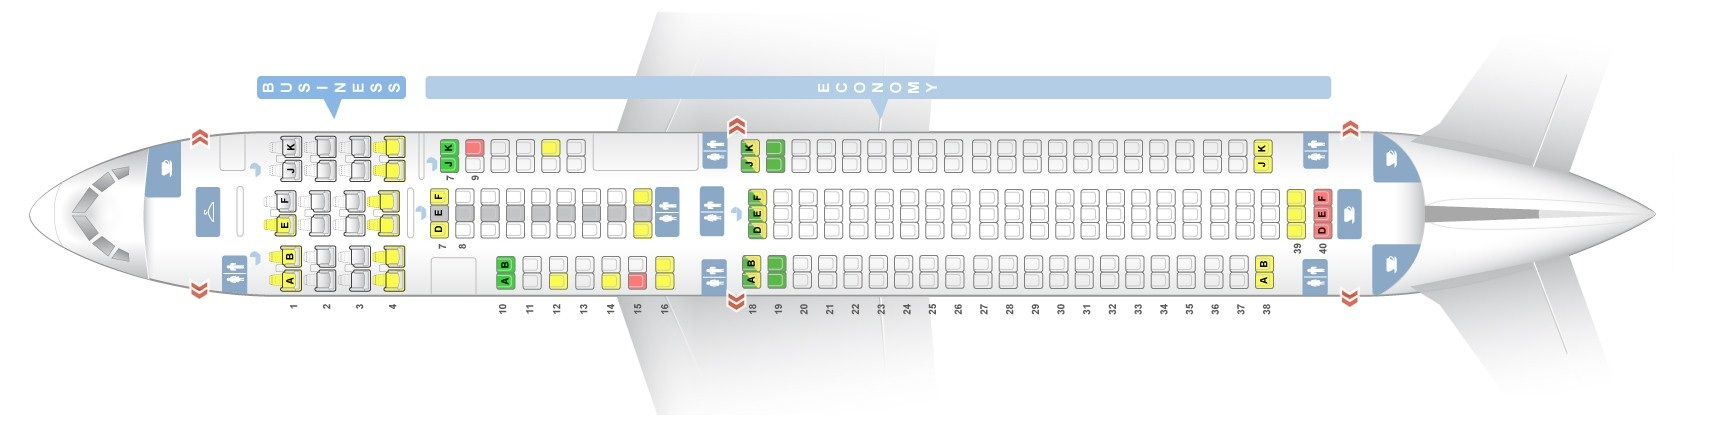 Seat map Boeing 767-300 Air New Zealand. Best seats in the plane